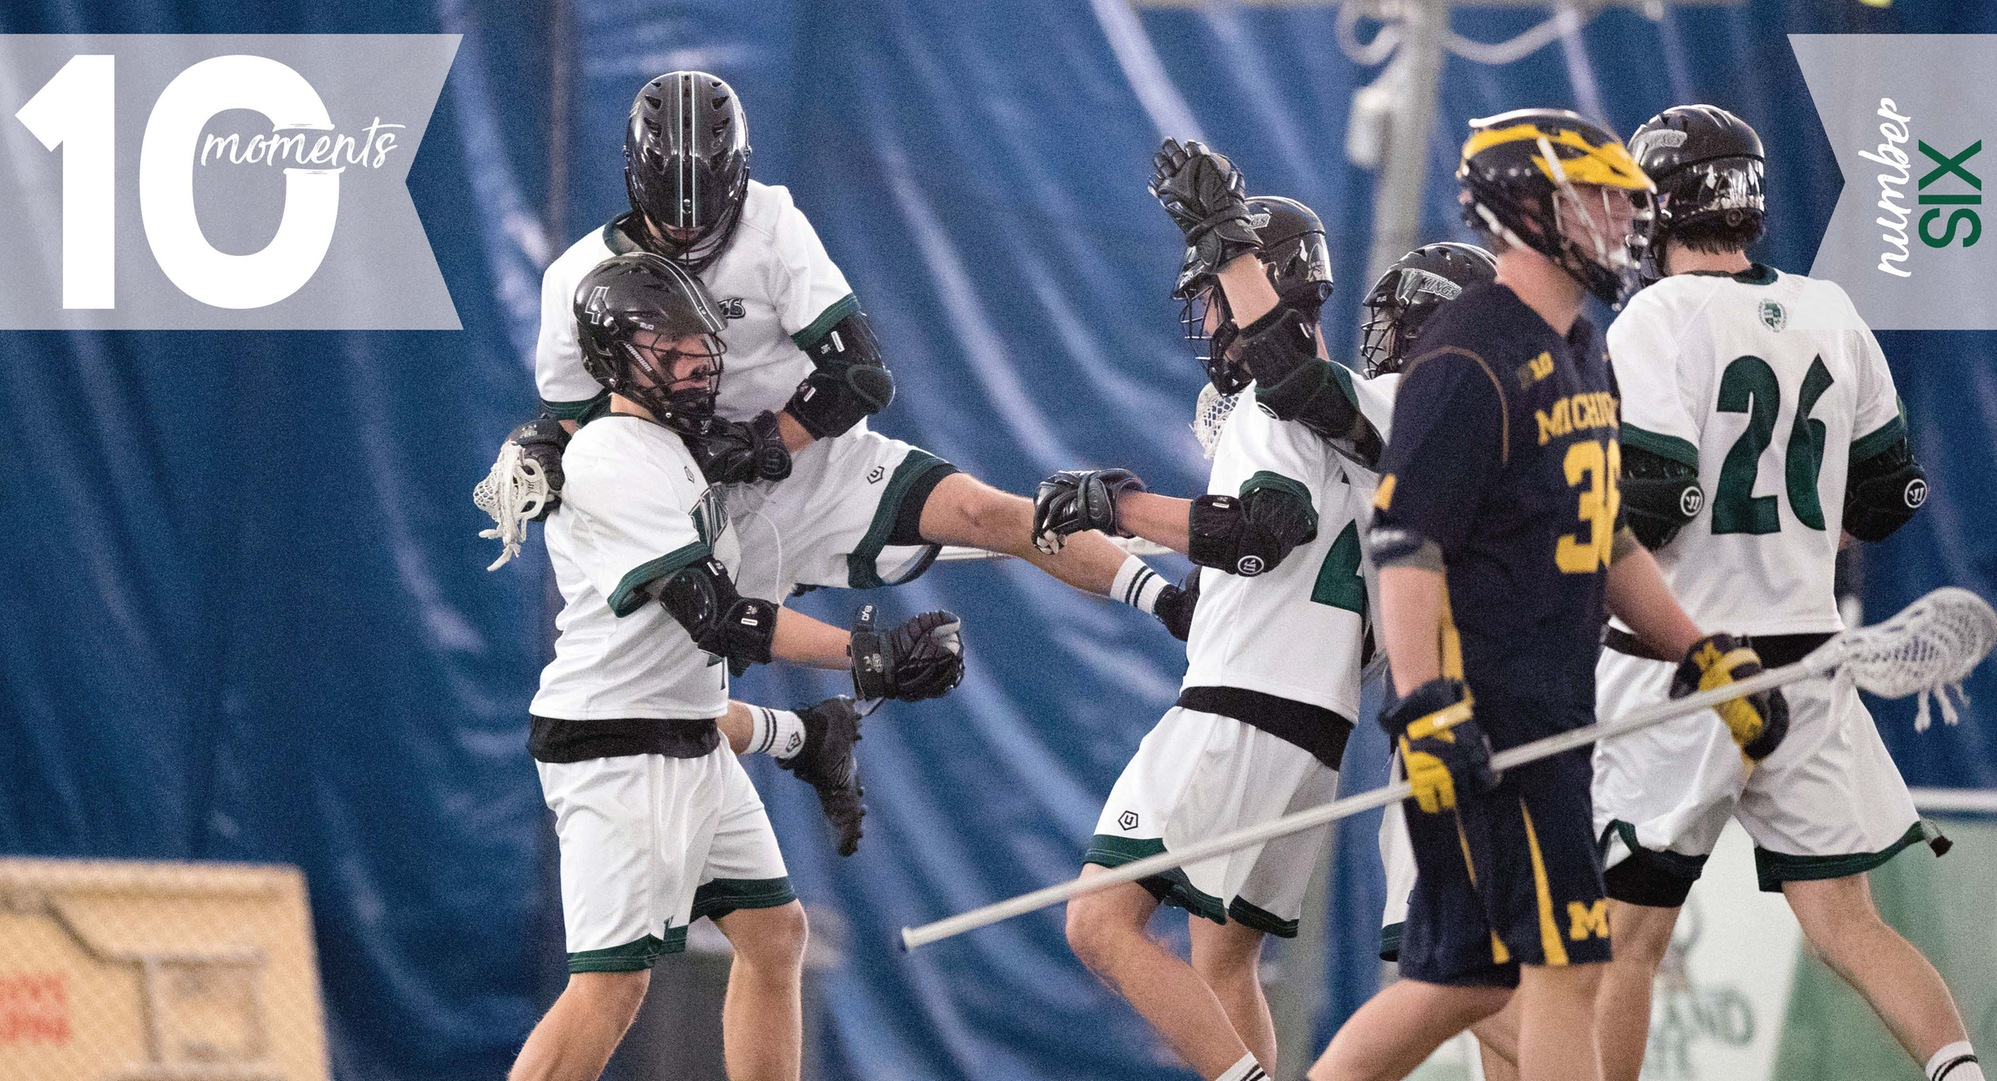 2016-17 CSU Athletics Top 10 Moments | #6 Men's Lacrosse Hosts Michigan for Inaugural Game